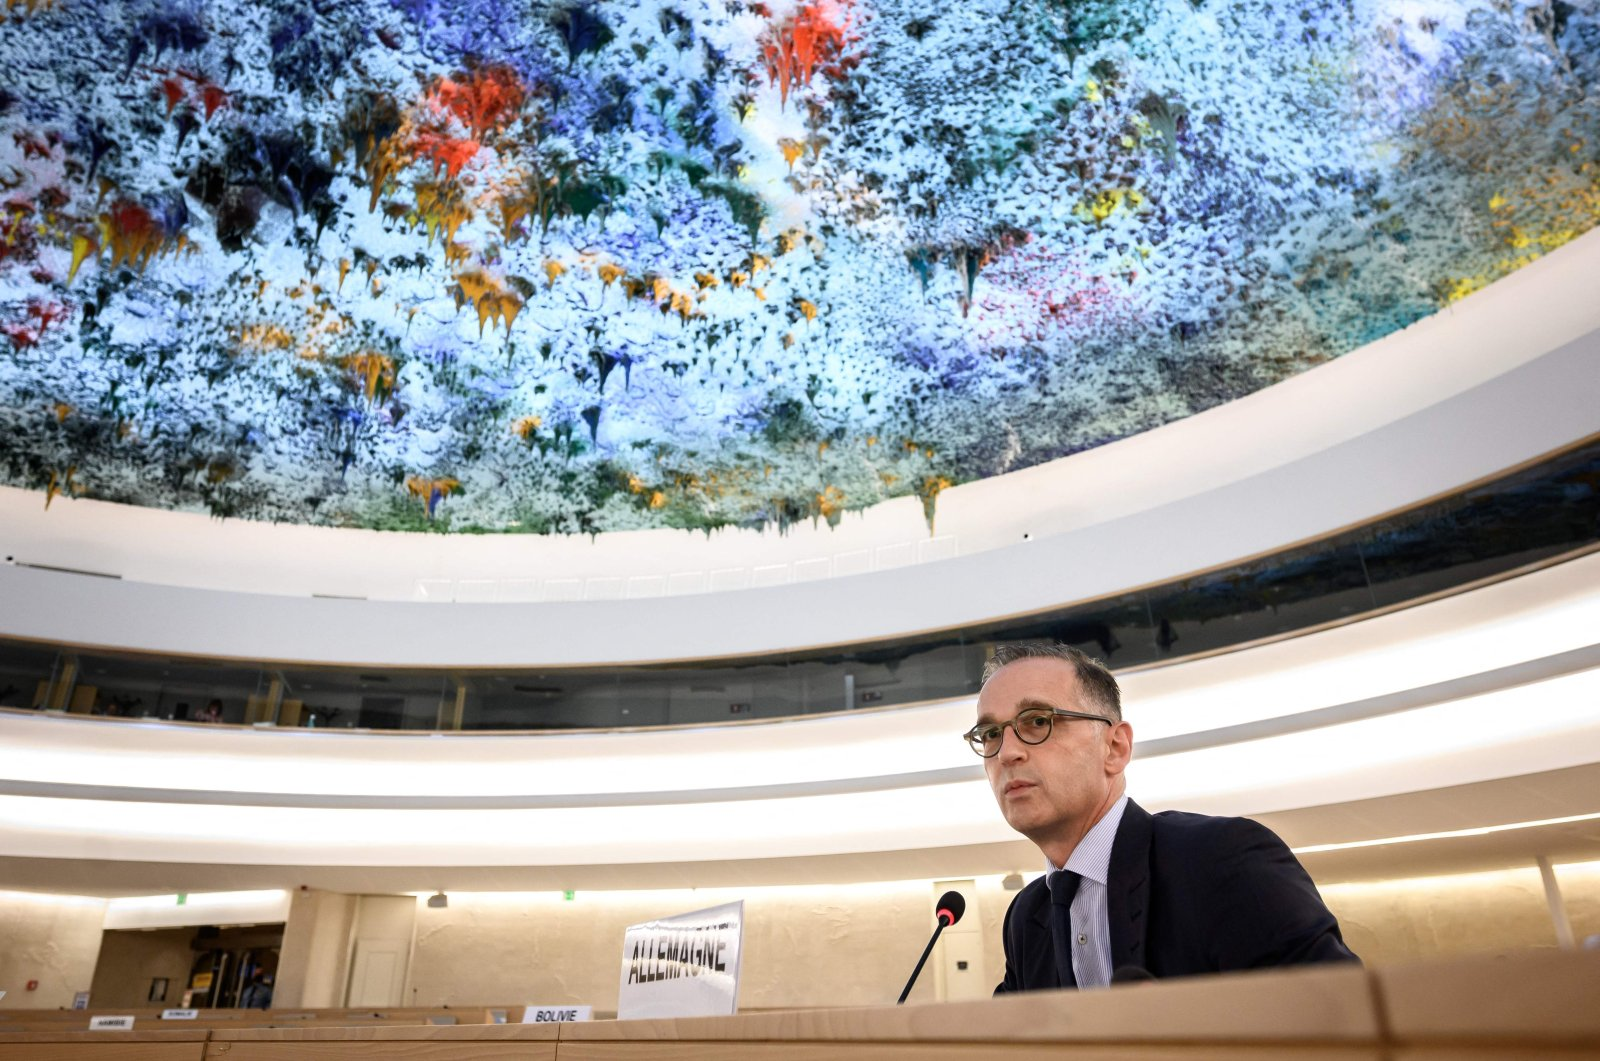 Germany's Foreign Minister Heiko Maas delivers a speech during a session of the U.N. Human Rights Council in Geneva, Switzerland, Sept. 13, 2021. (AFP Photo)